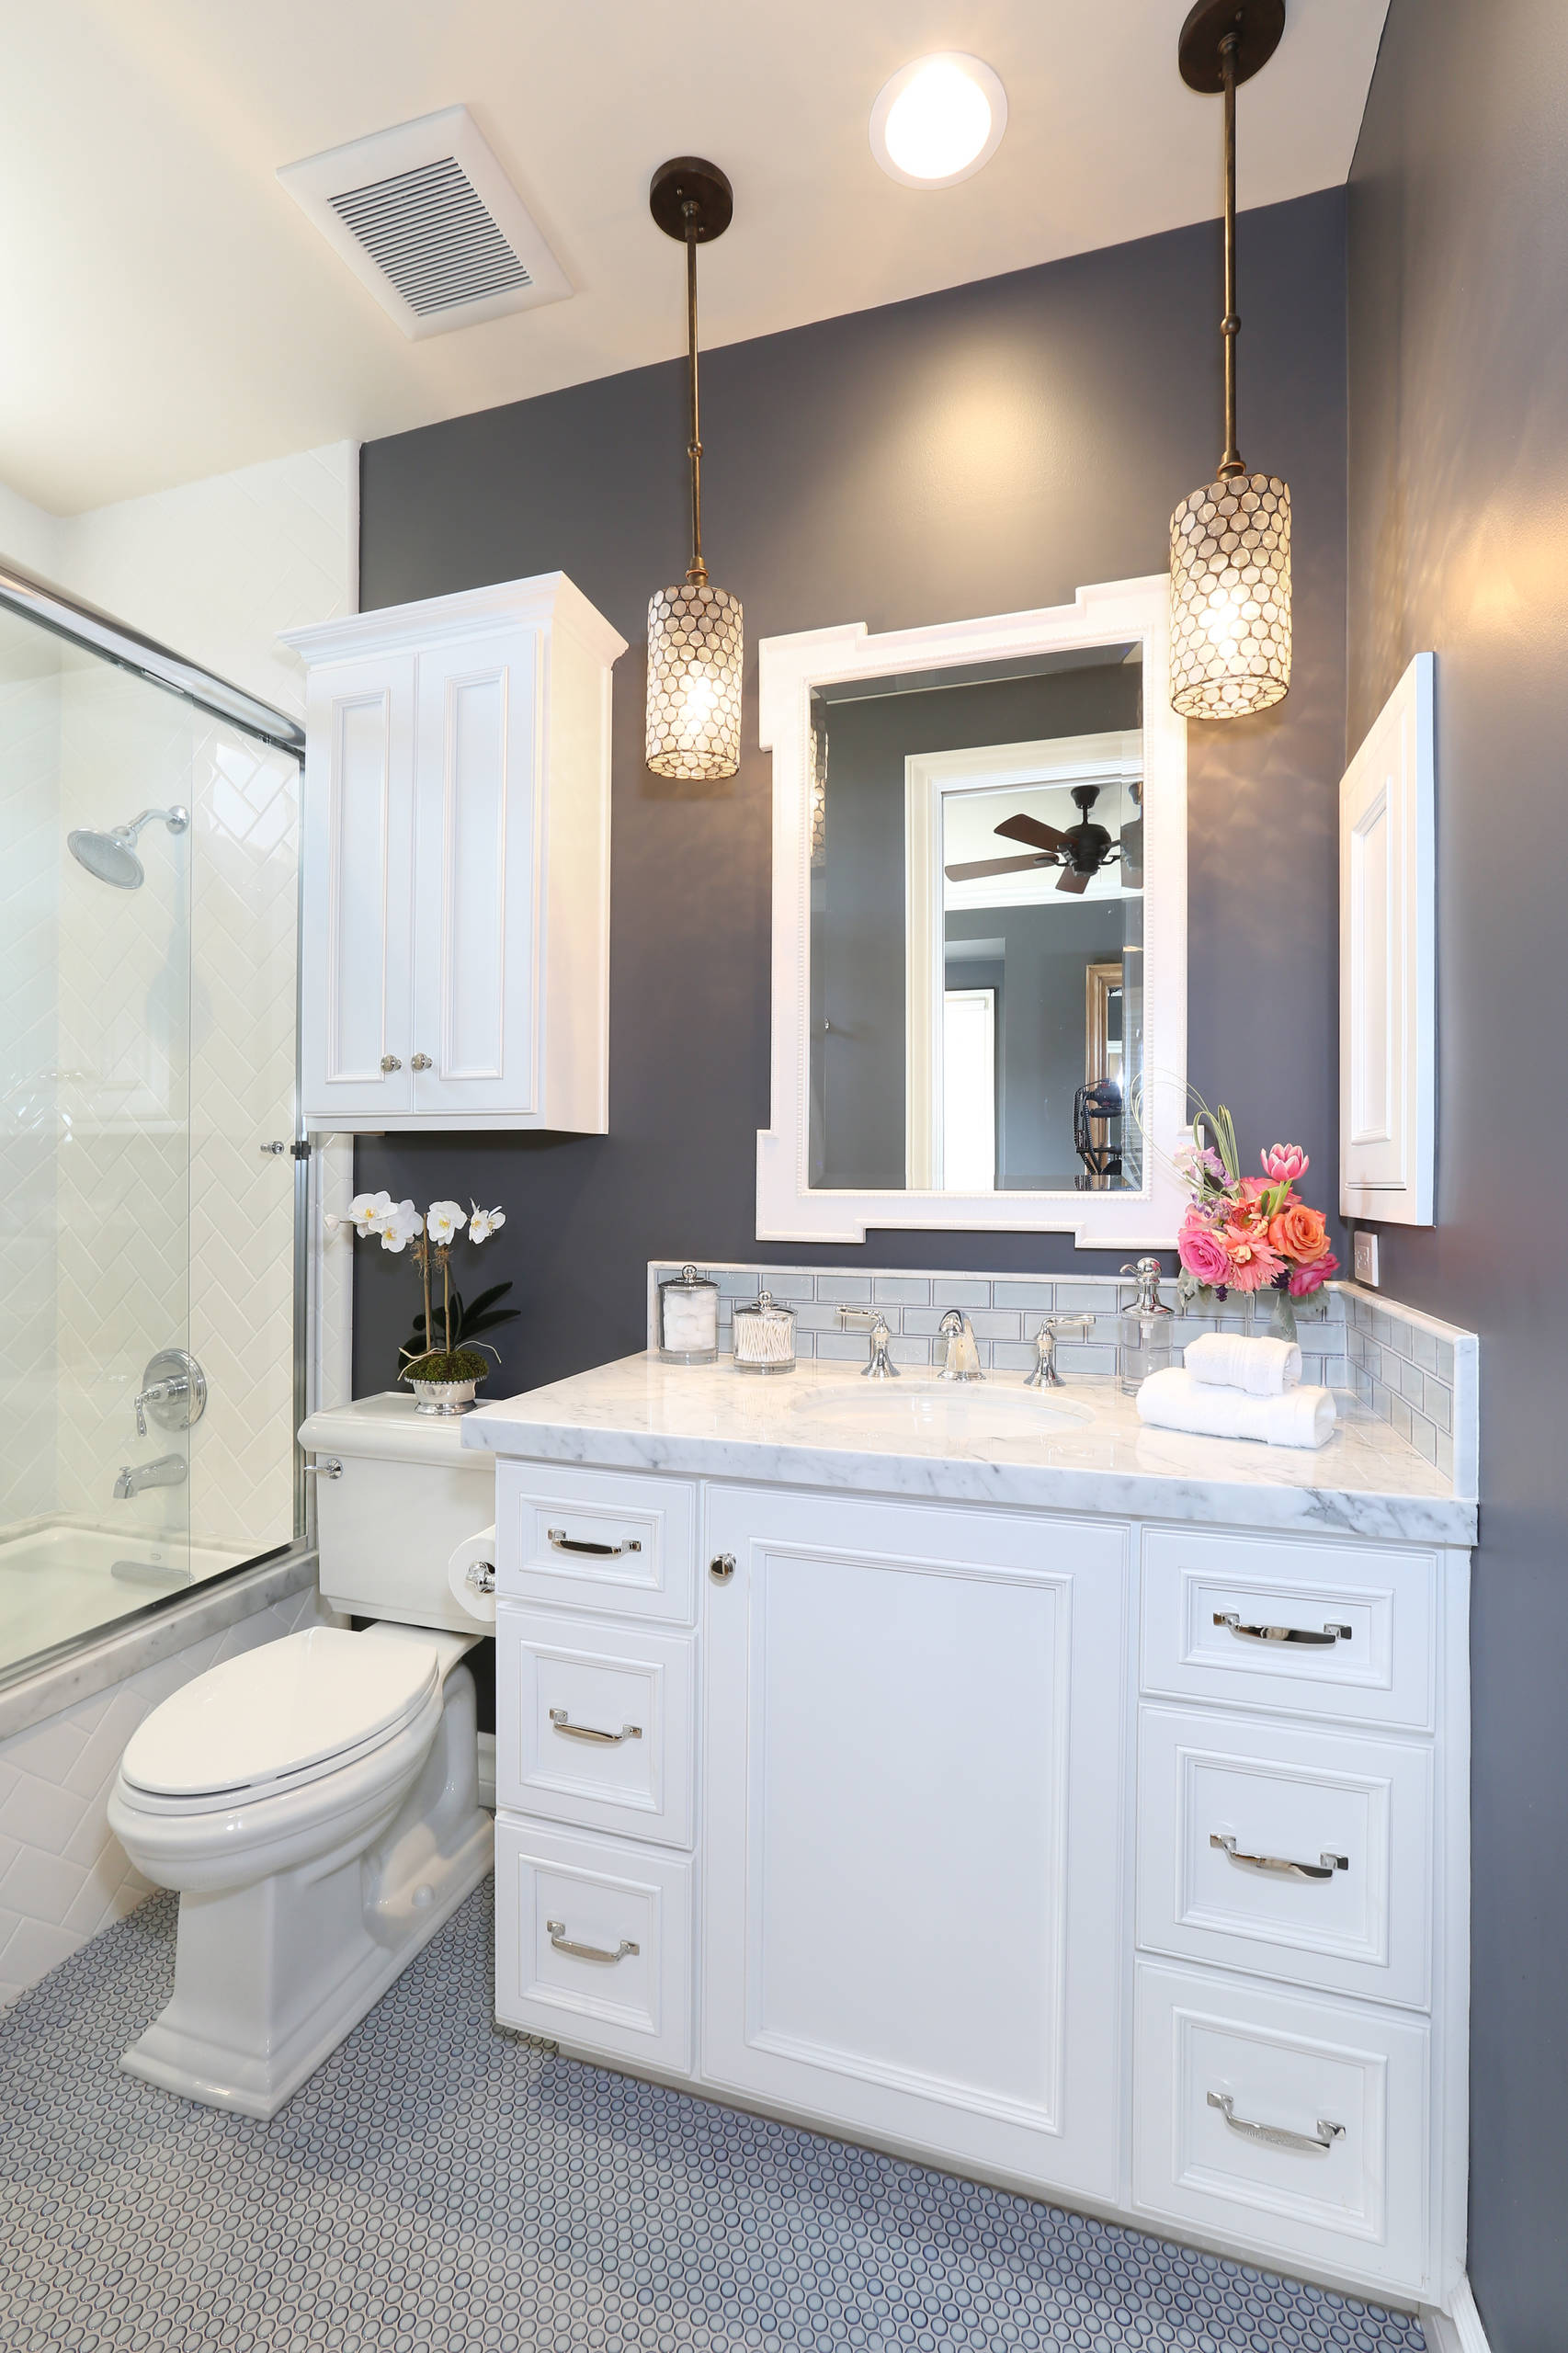 Pendant Light Over Vanity Ideas Photos Houzz